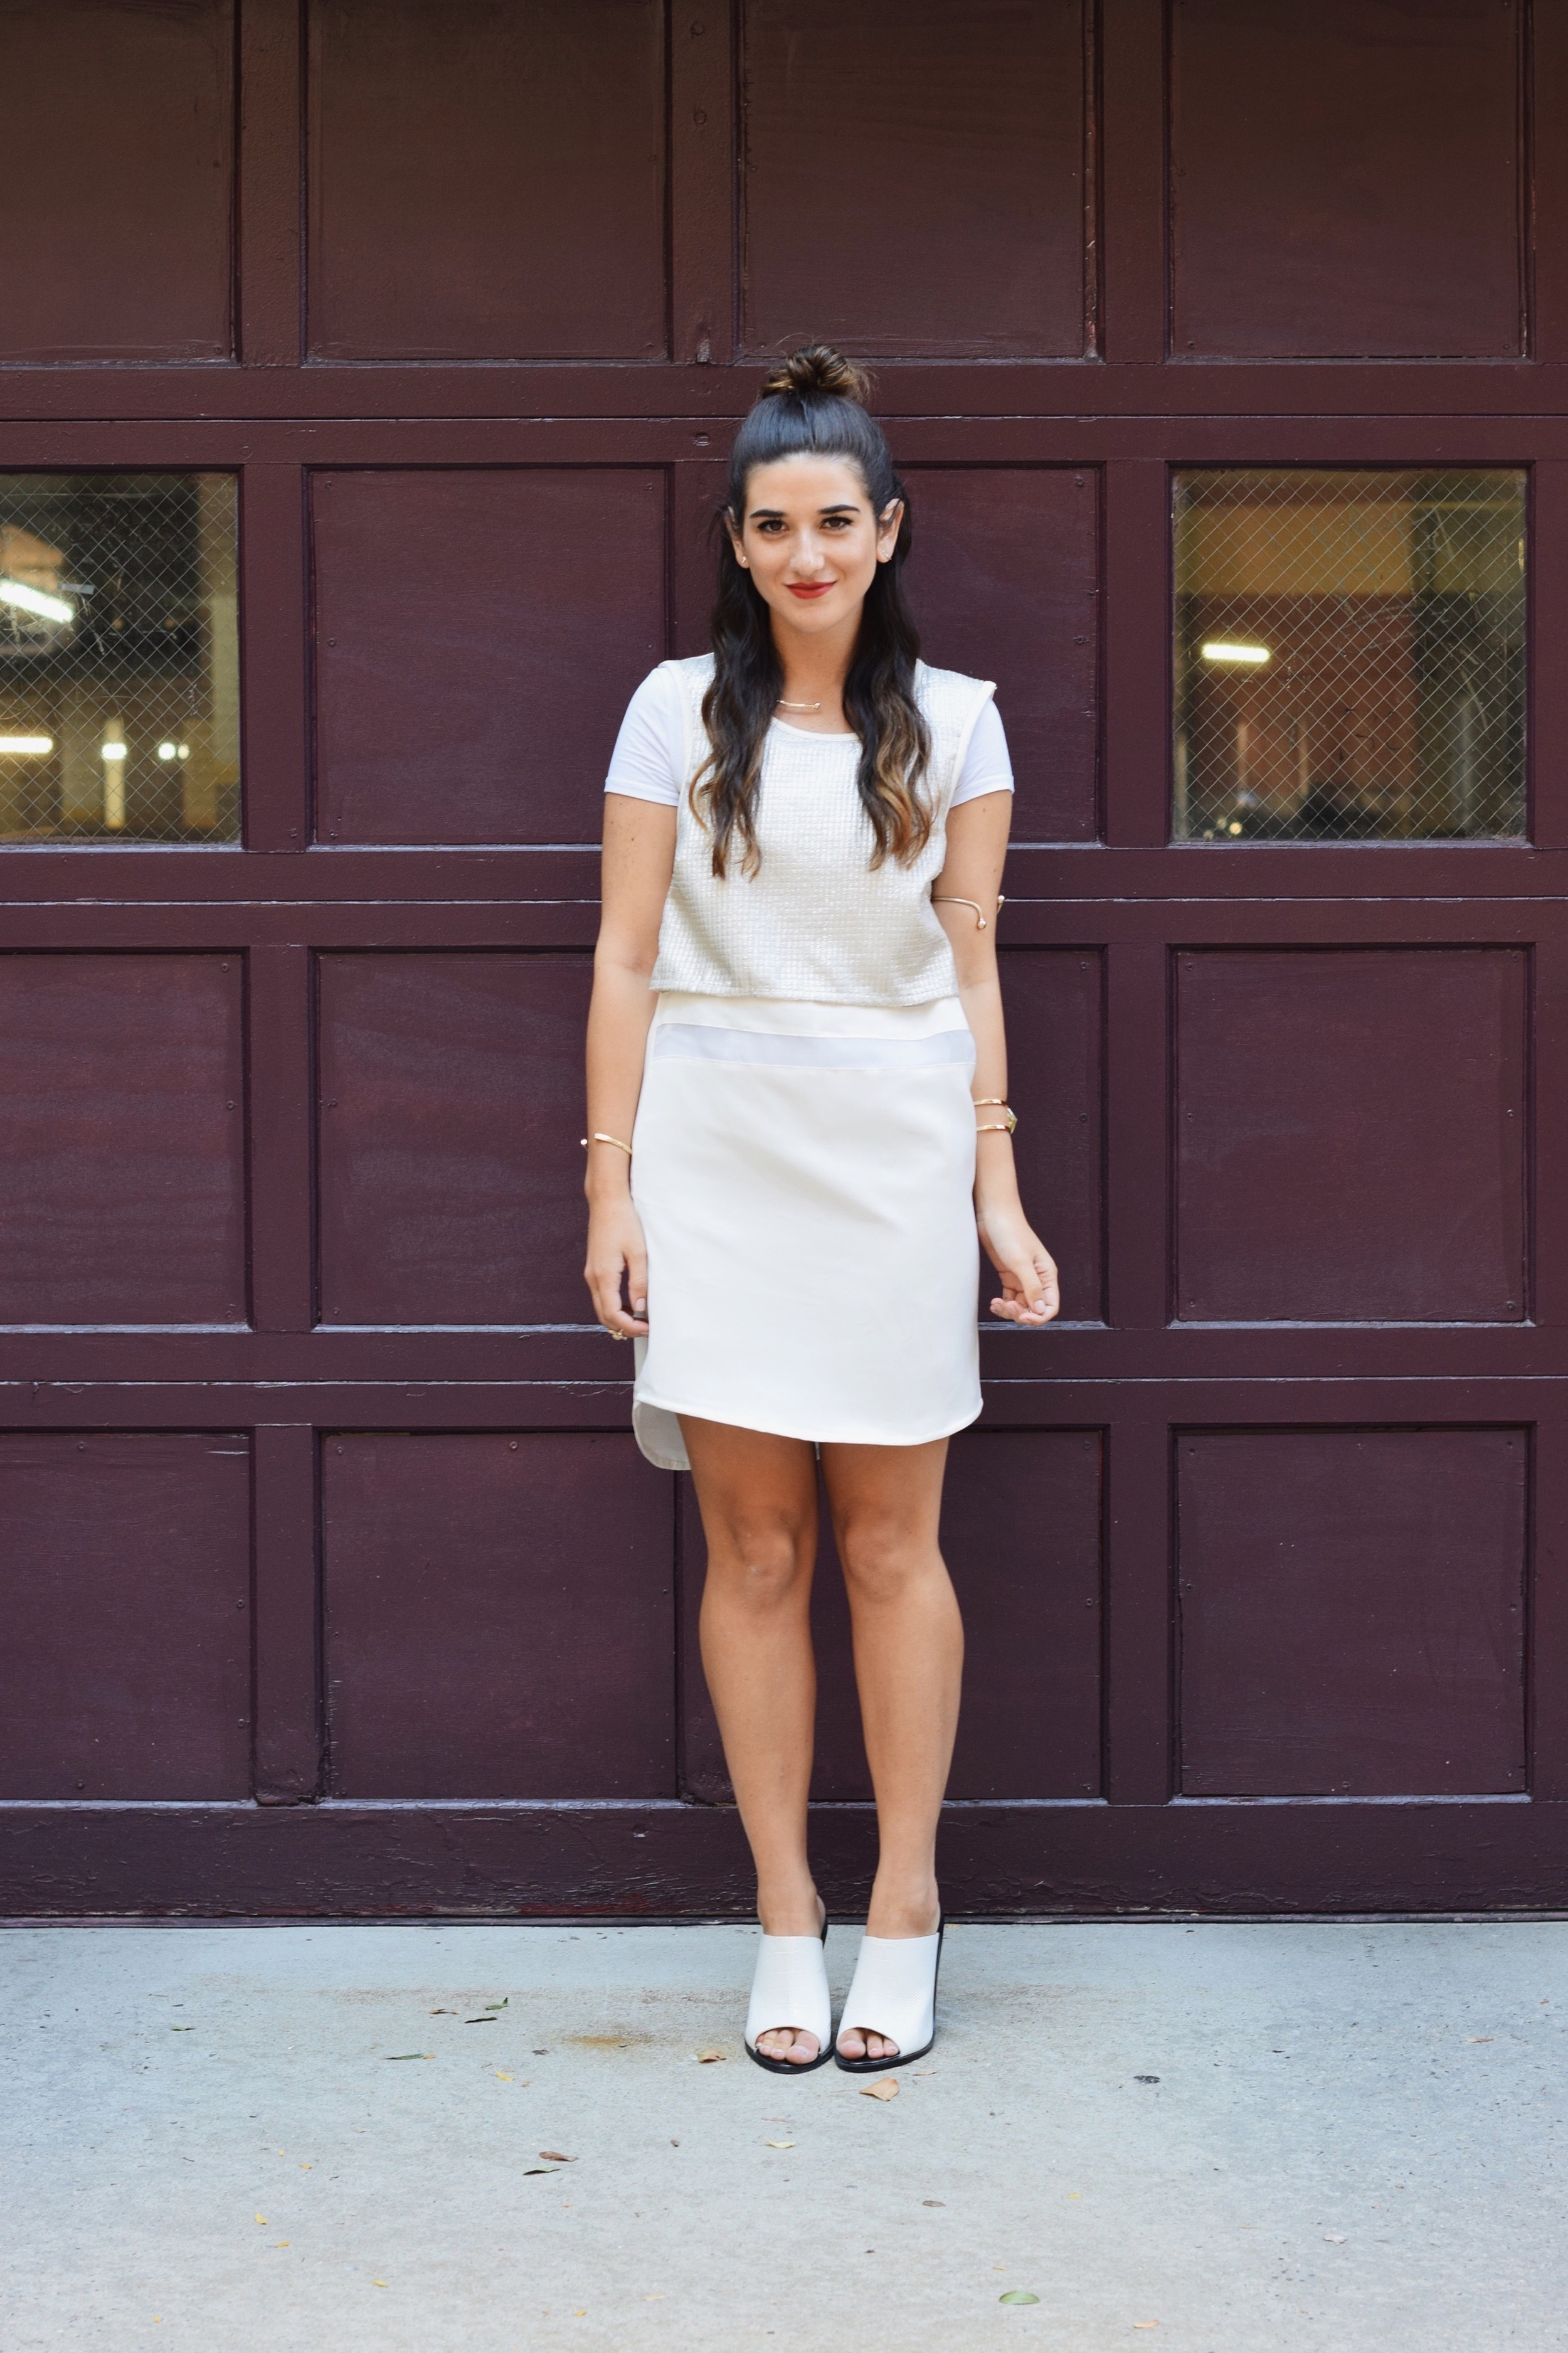 All White Look Gold Jewelry Louboutins & Love Fashion Blog Esther Santer Street Style NYC Blogger Lydell NYC Lumier Bariano Red Light PR Collab IfChic Mod Mules Topknot Hair Girl Model Photoshoot Collar Necklace Bracelet Dress OOTD Outfit Summer Shop.jpg